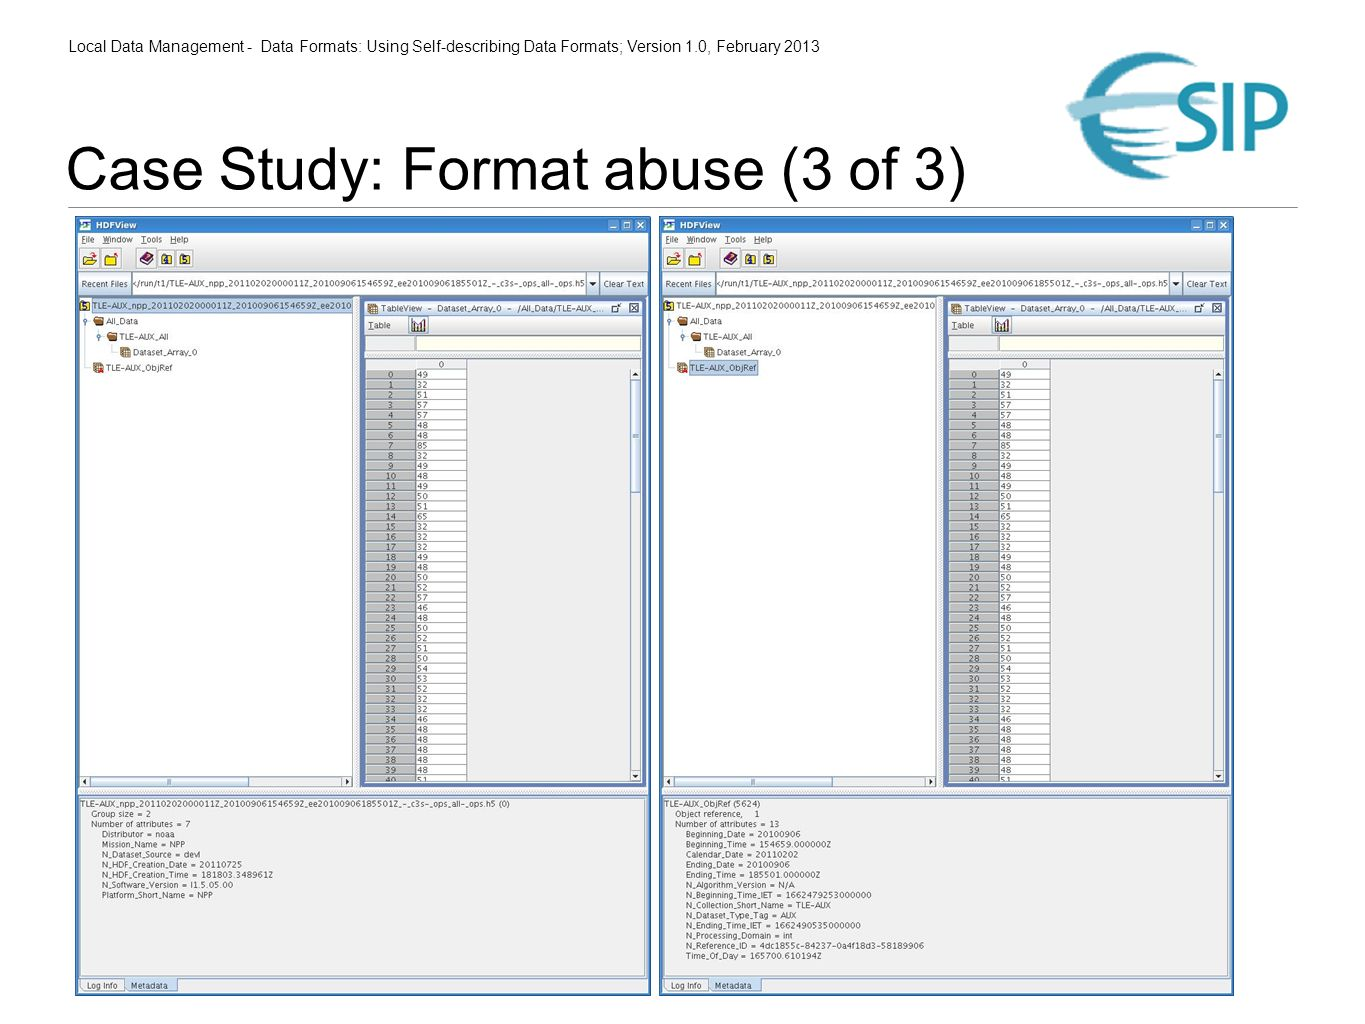 Local Data Management - Data Formats: Using Self-describing Data Formats; Version 1.0, February 2013 Case Study: Format abuse (3 of 3)